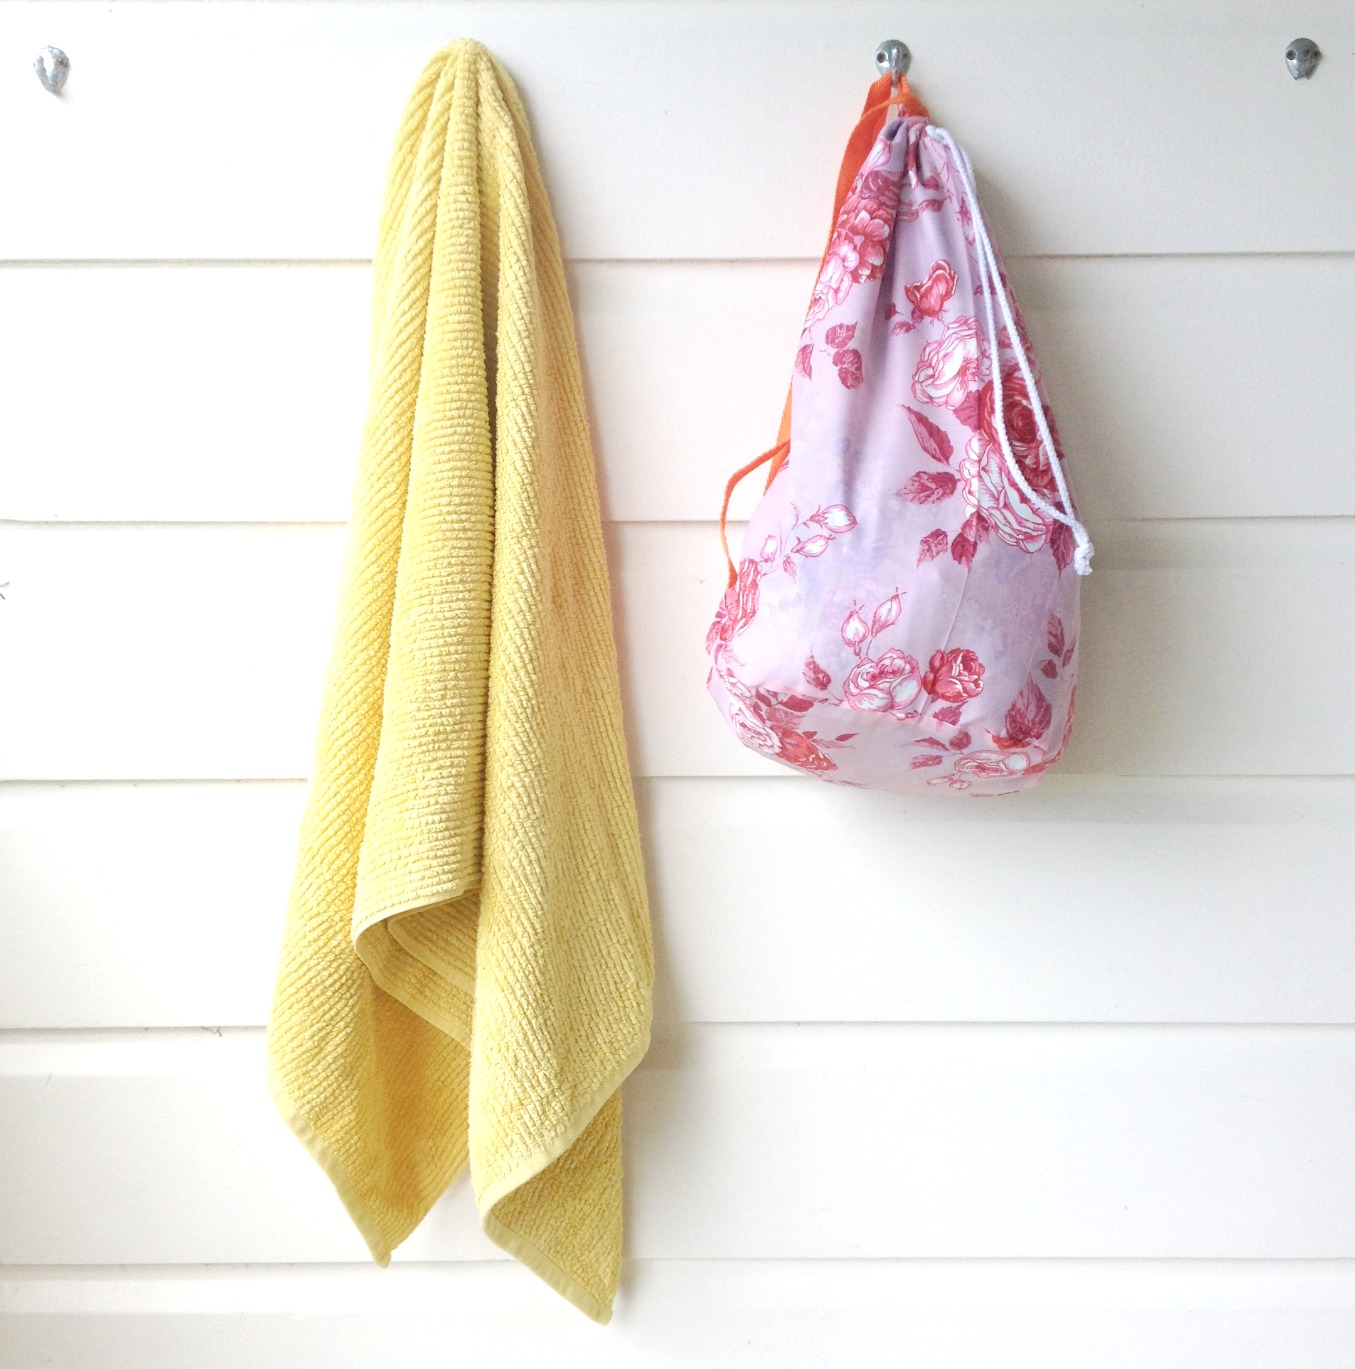 bag-with-towel